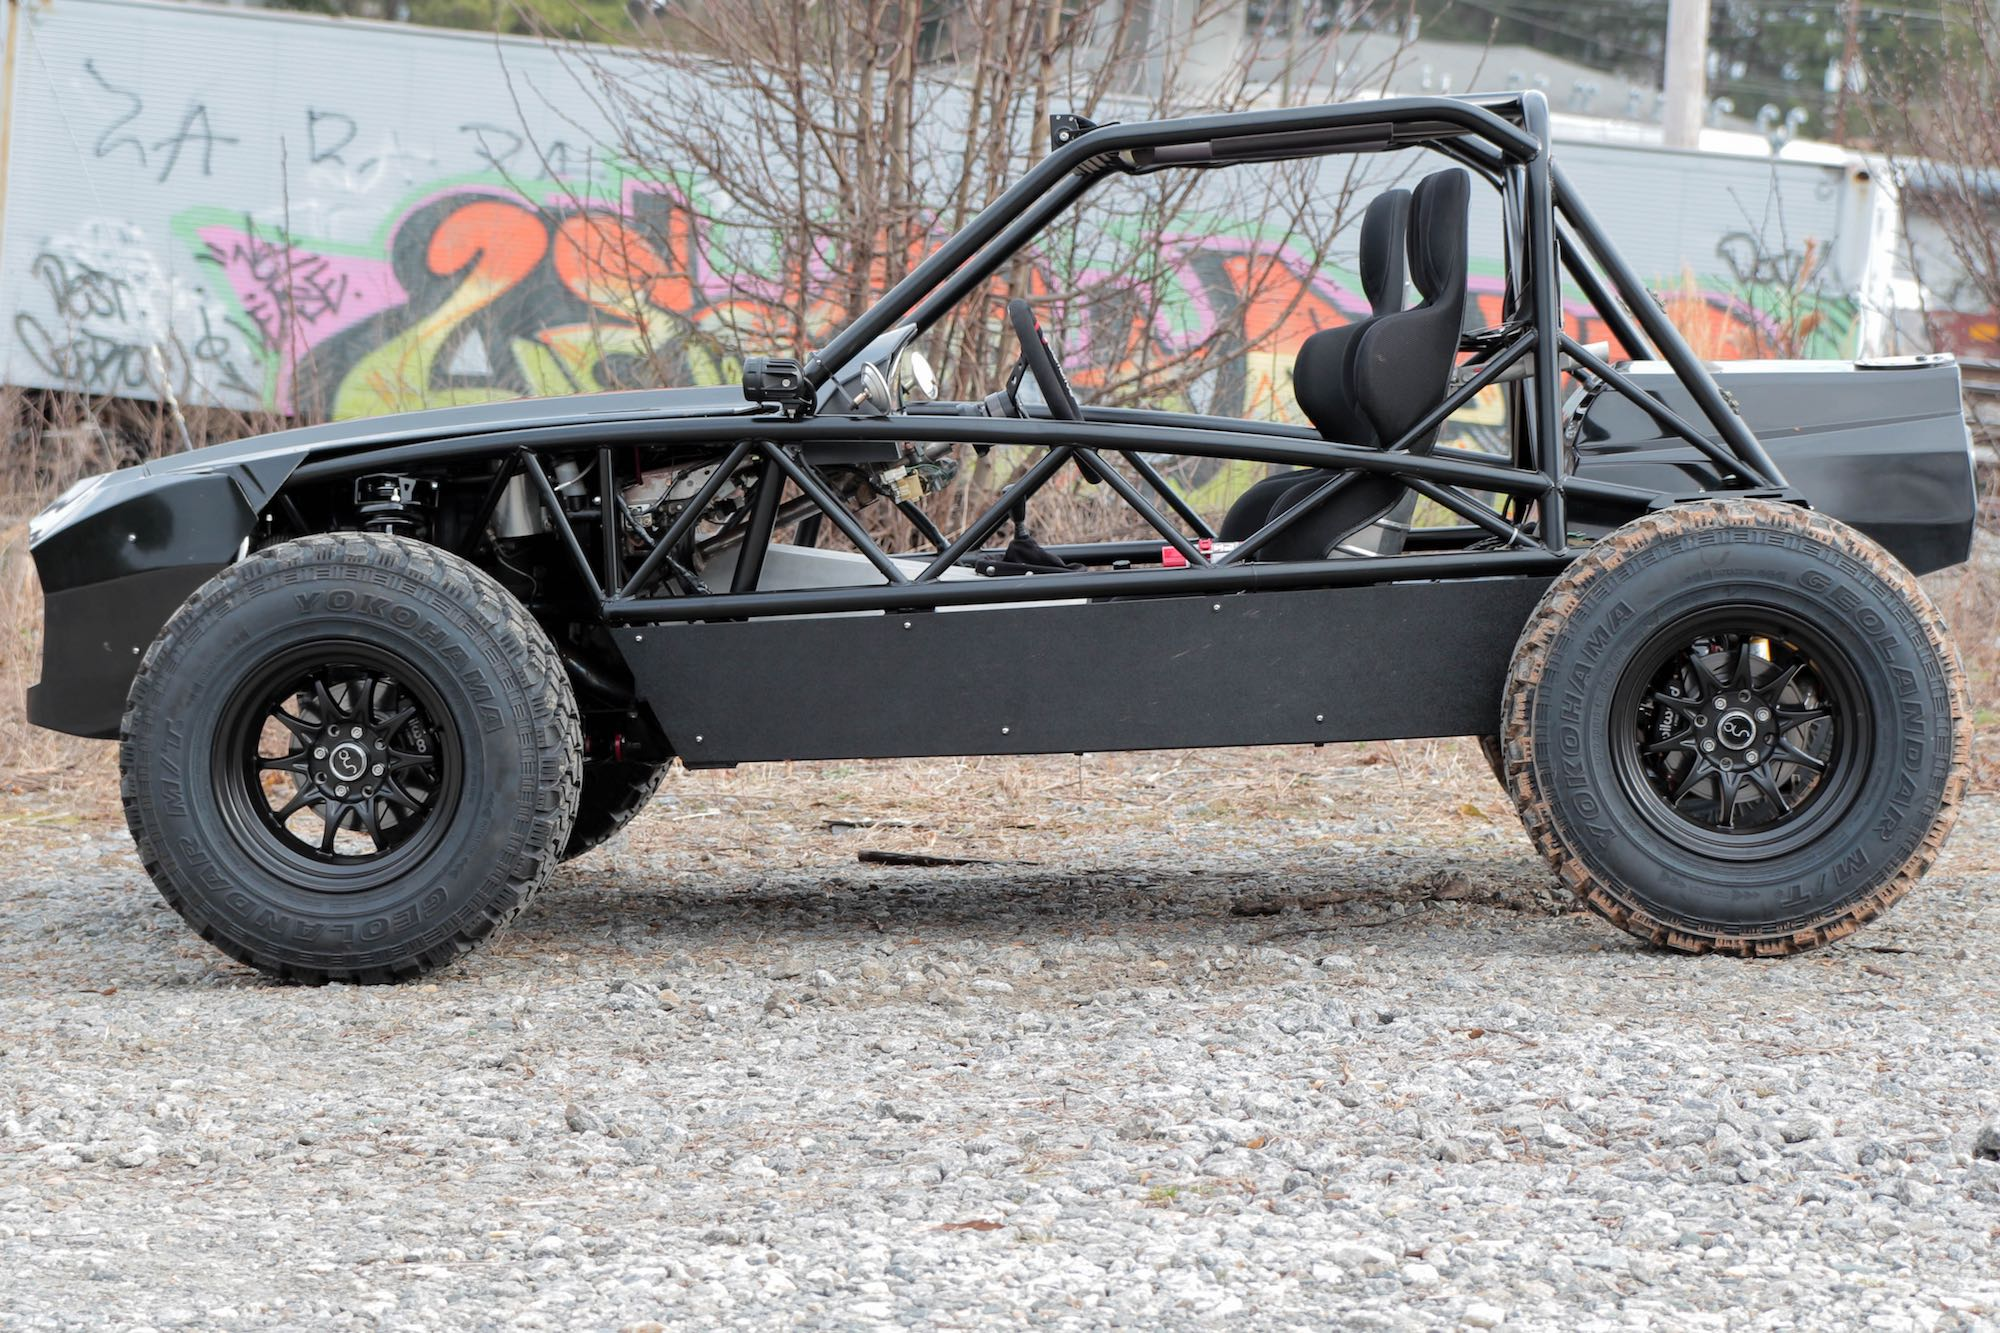 exocet-off-road-is-a-mazda-miata-based-go-anywhere-ariel-nomad-diy-replica_2.jpg